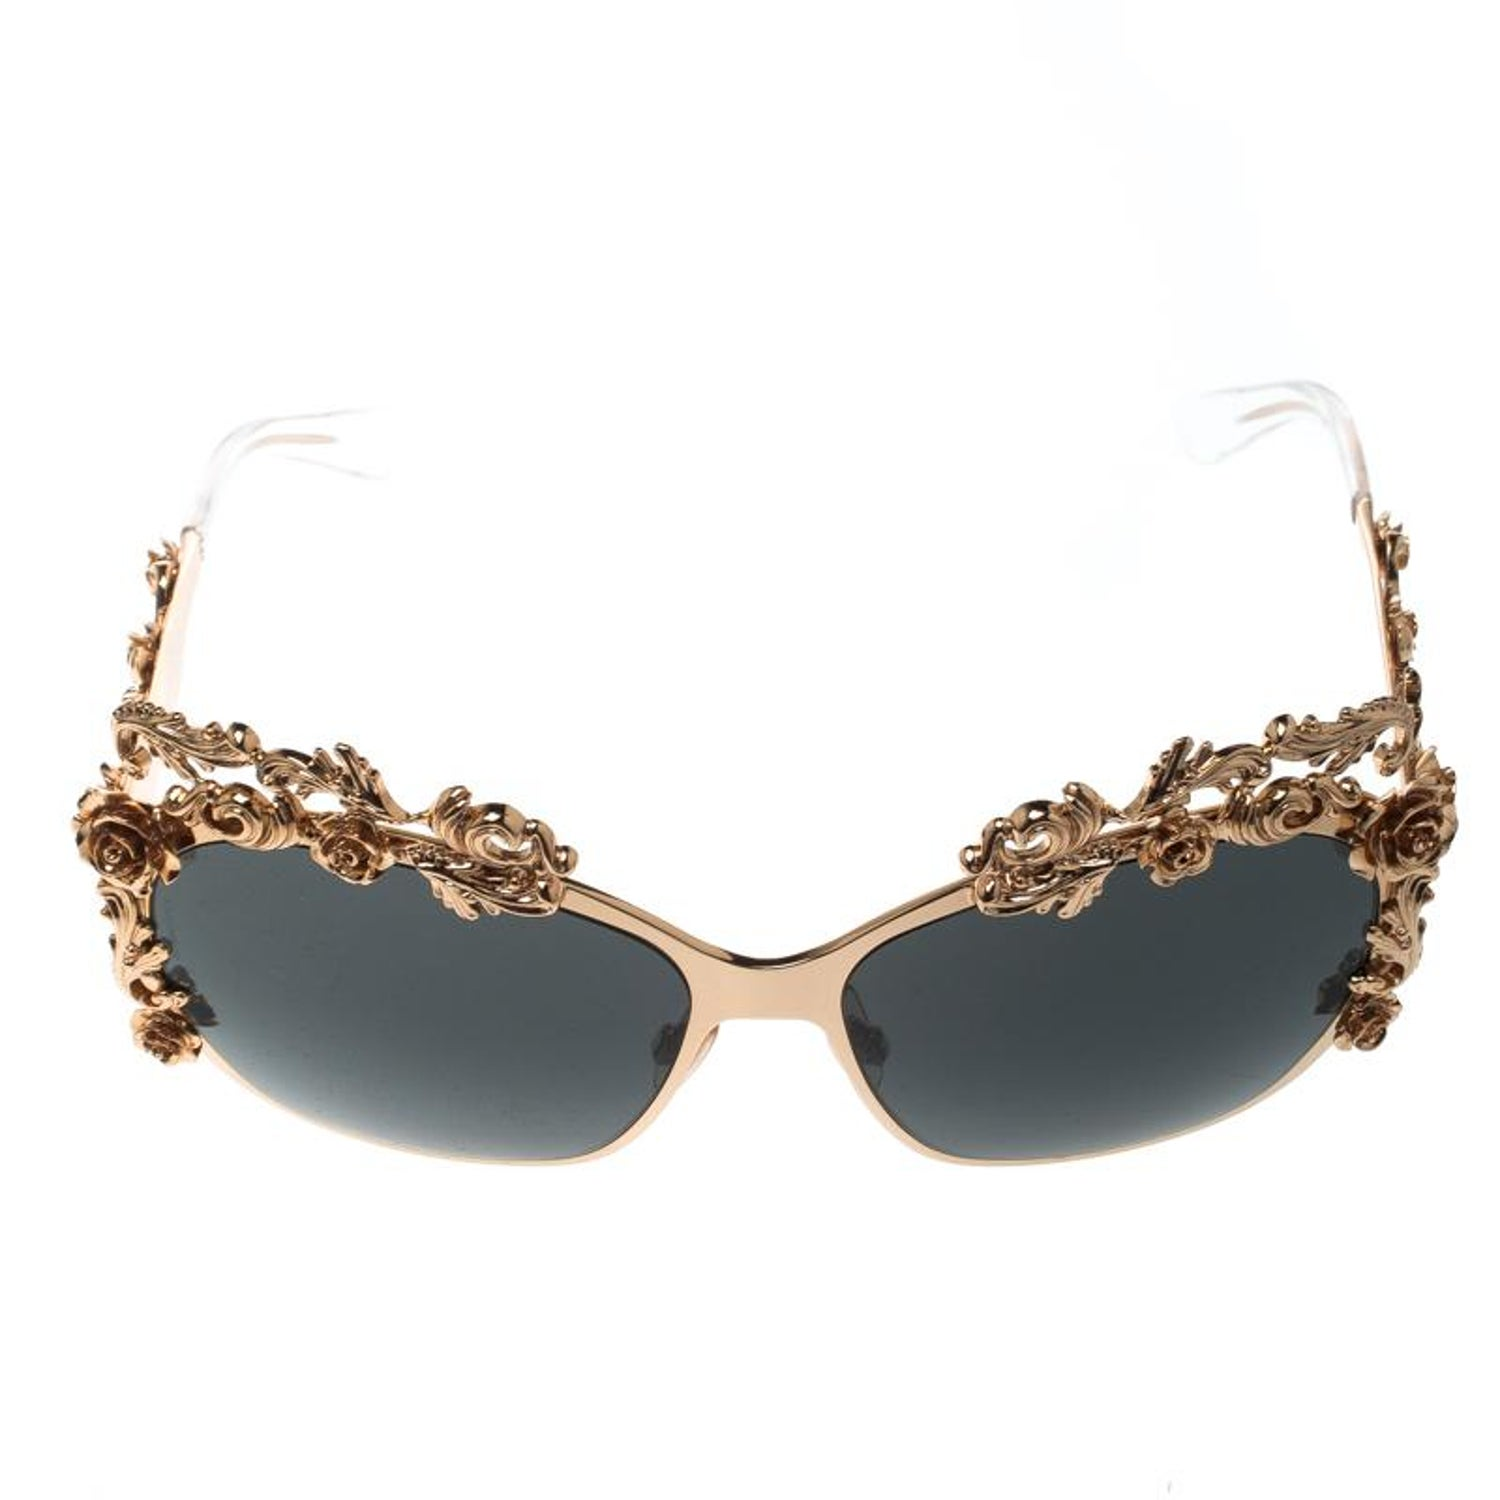 6f33317f1cd8 Dolce and Gabbana Gold Black DG2121 Baroque Butterfly Sunglasses at 1stdibs